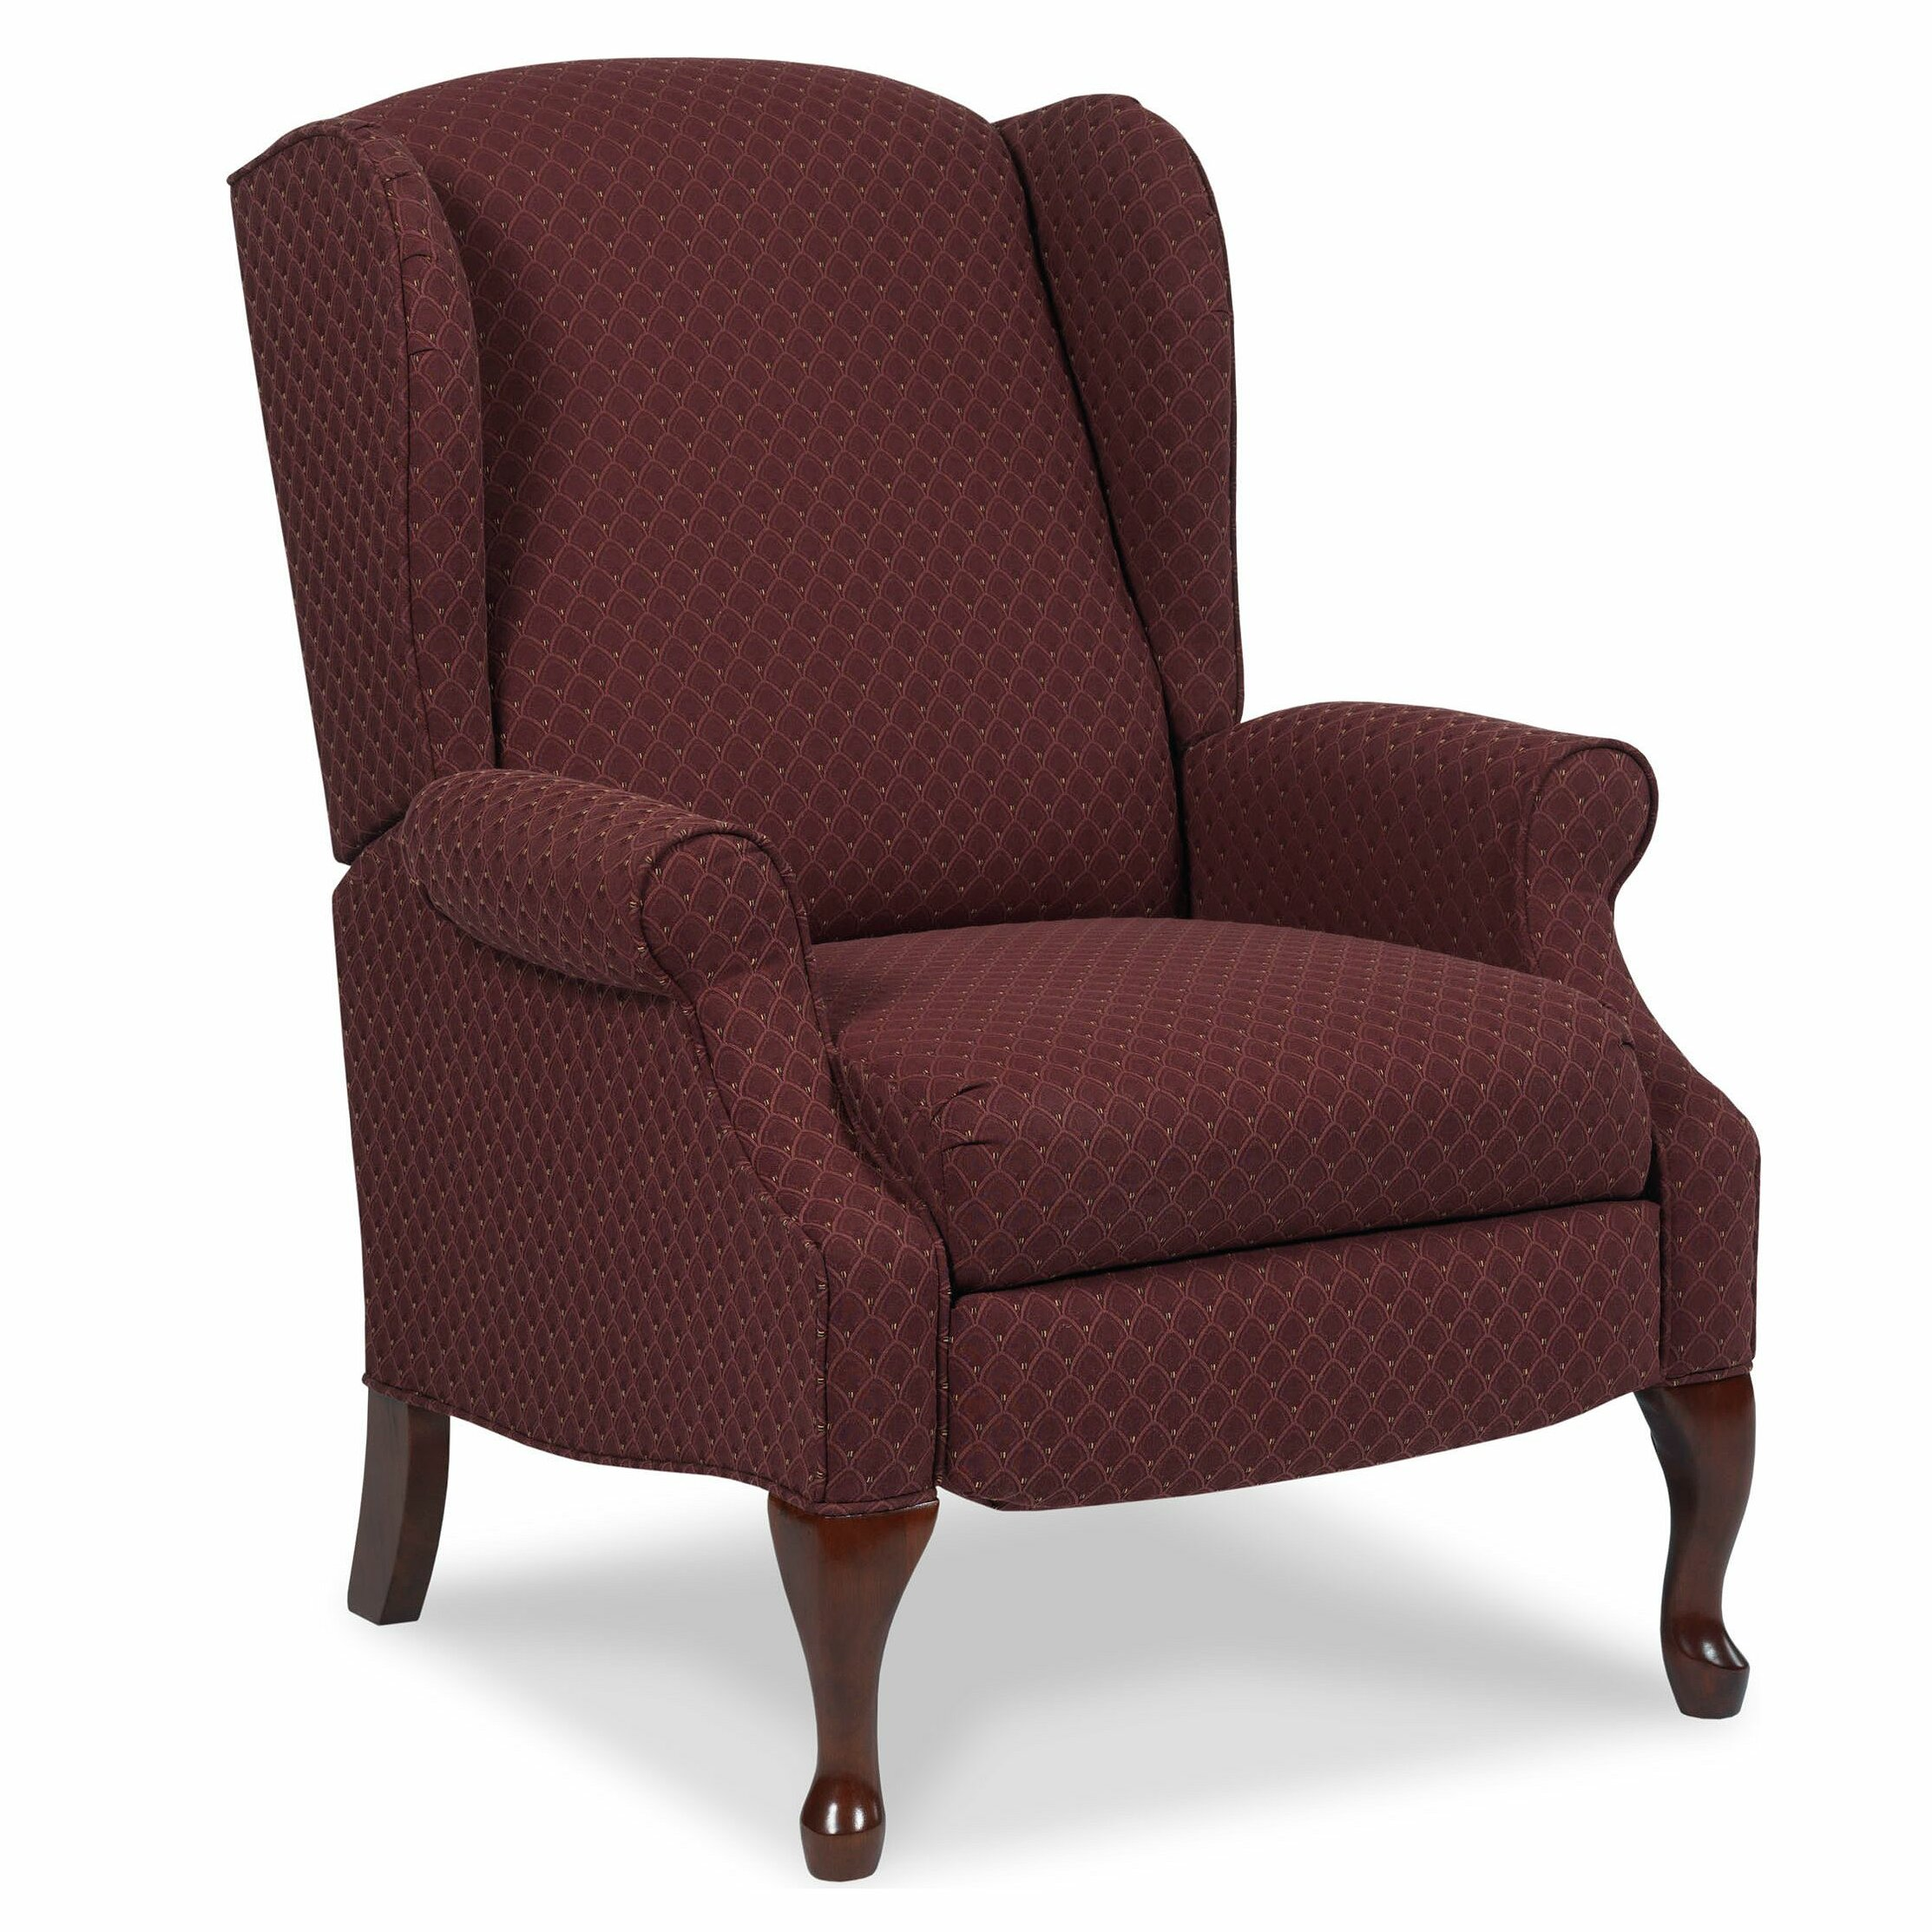 Lane furniture hampton recliner wayfair for Lane furniture